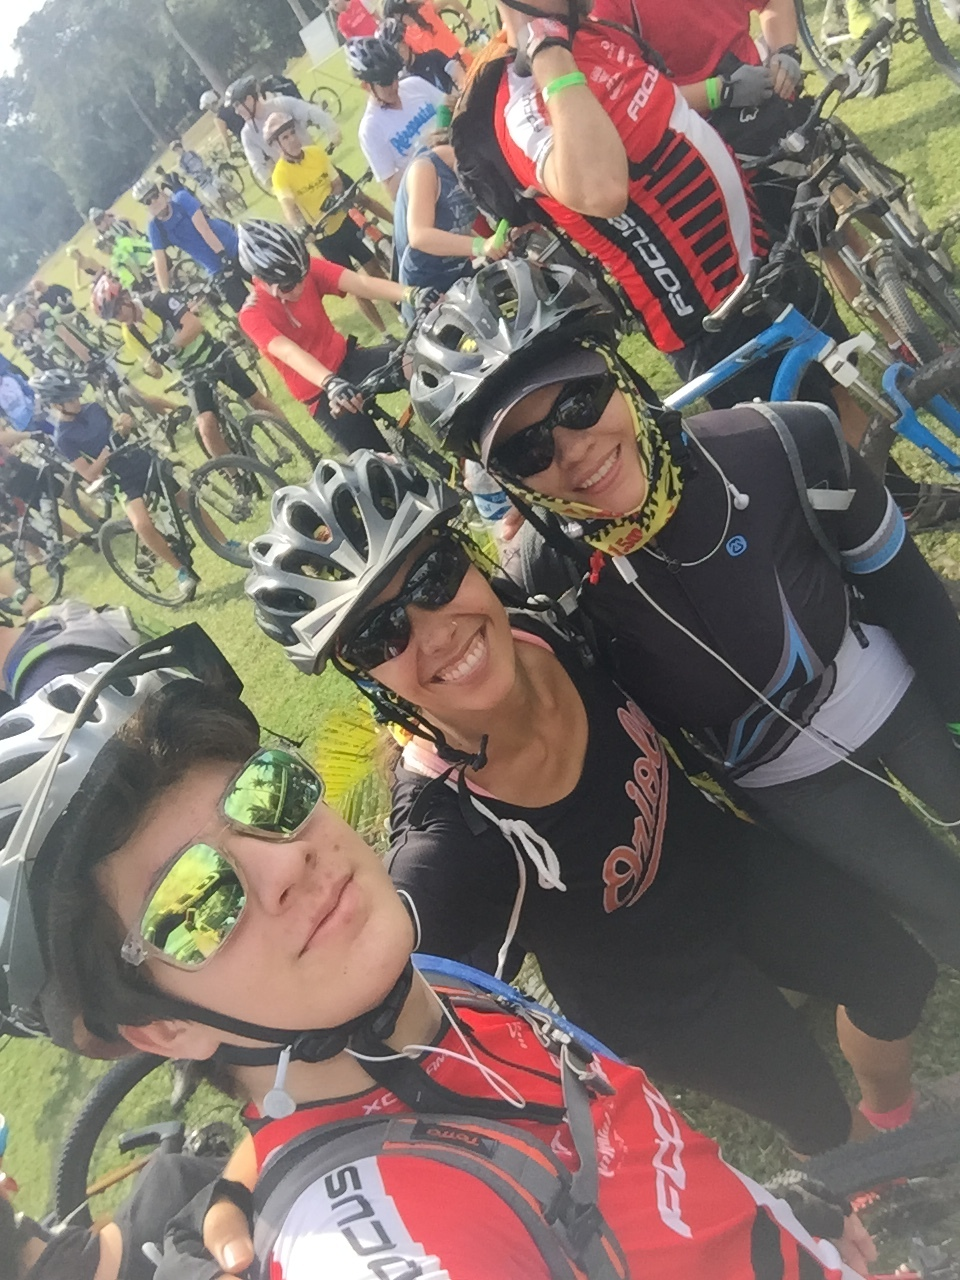 Gabriel, me, and Veronica at the start of the race.